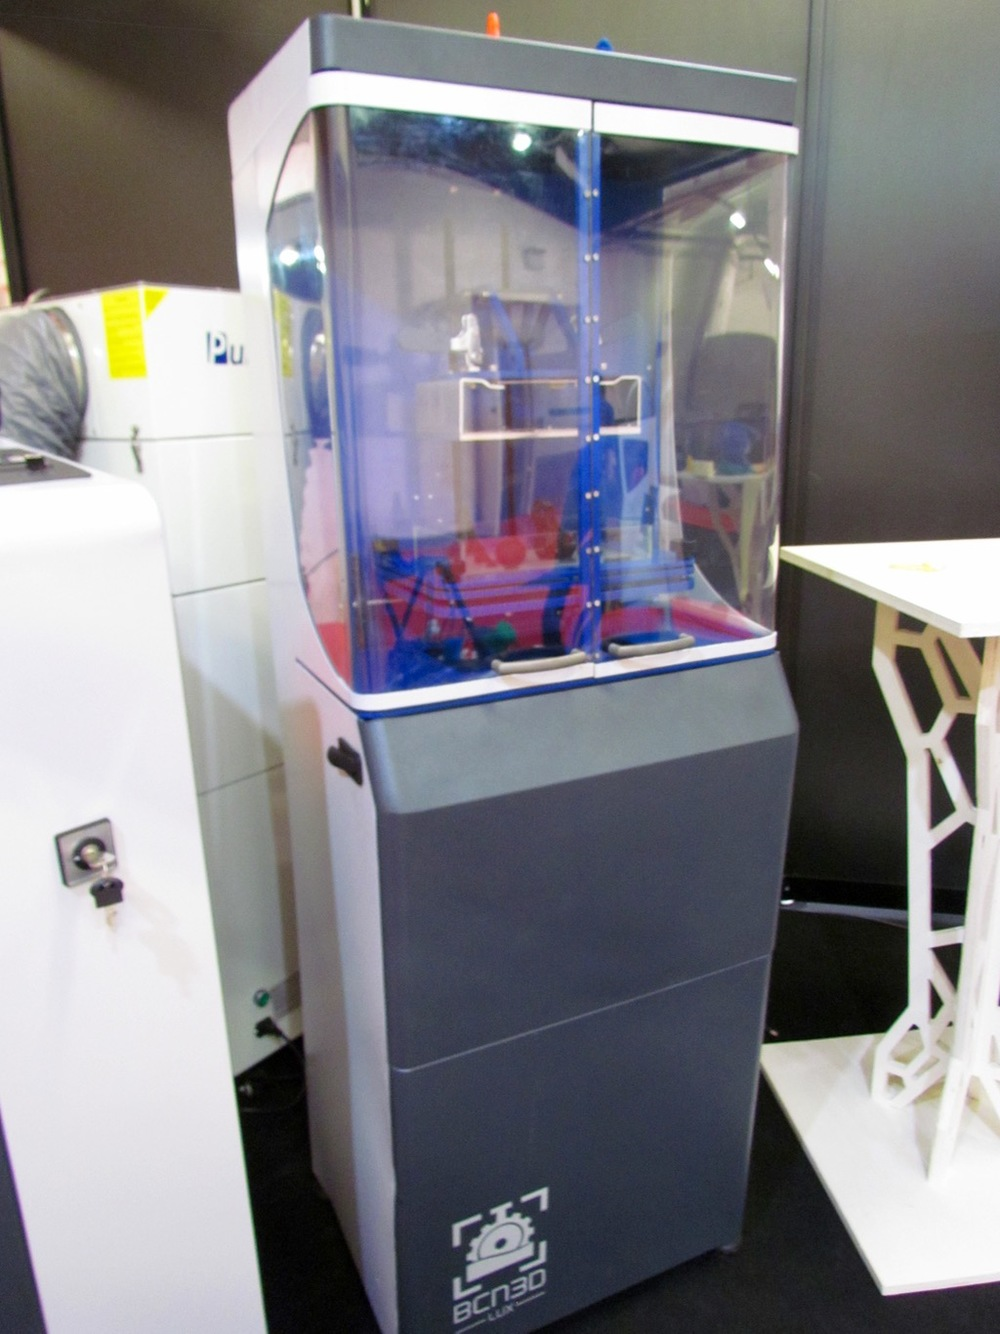 Bcn3d S Explosion Of New 3d Printers And A Laser Cutter Too